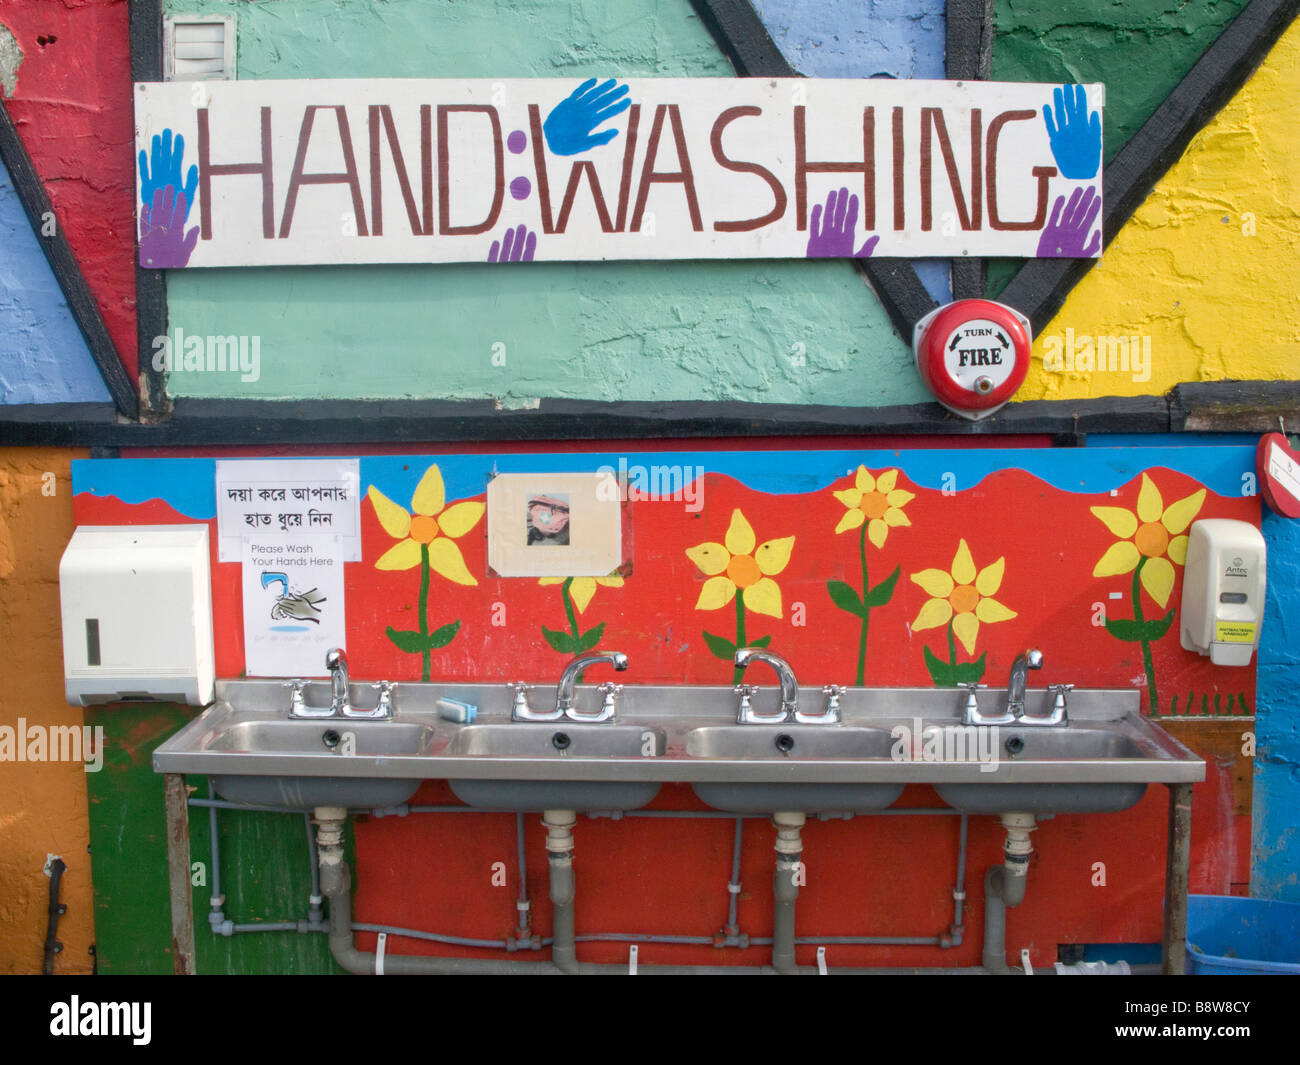 UK.Washing facilities for volunteers at Spitalfields City Farm in east London. - Stock Image